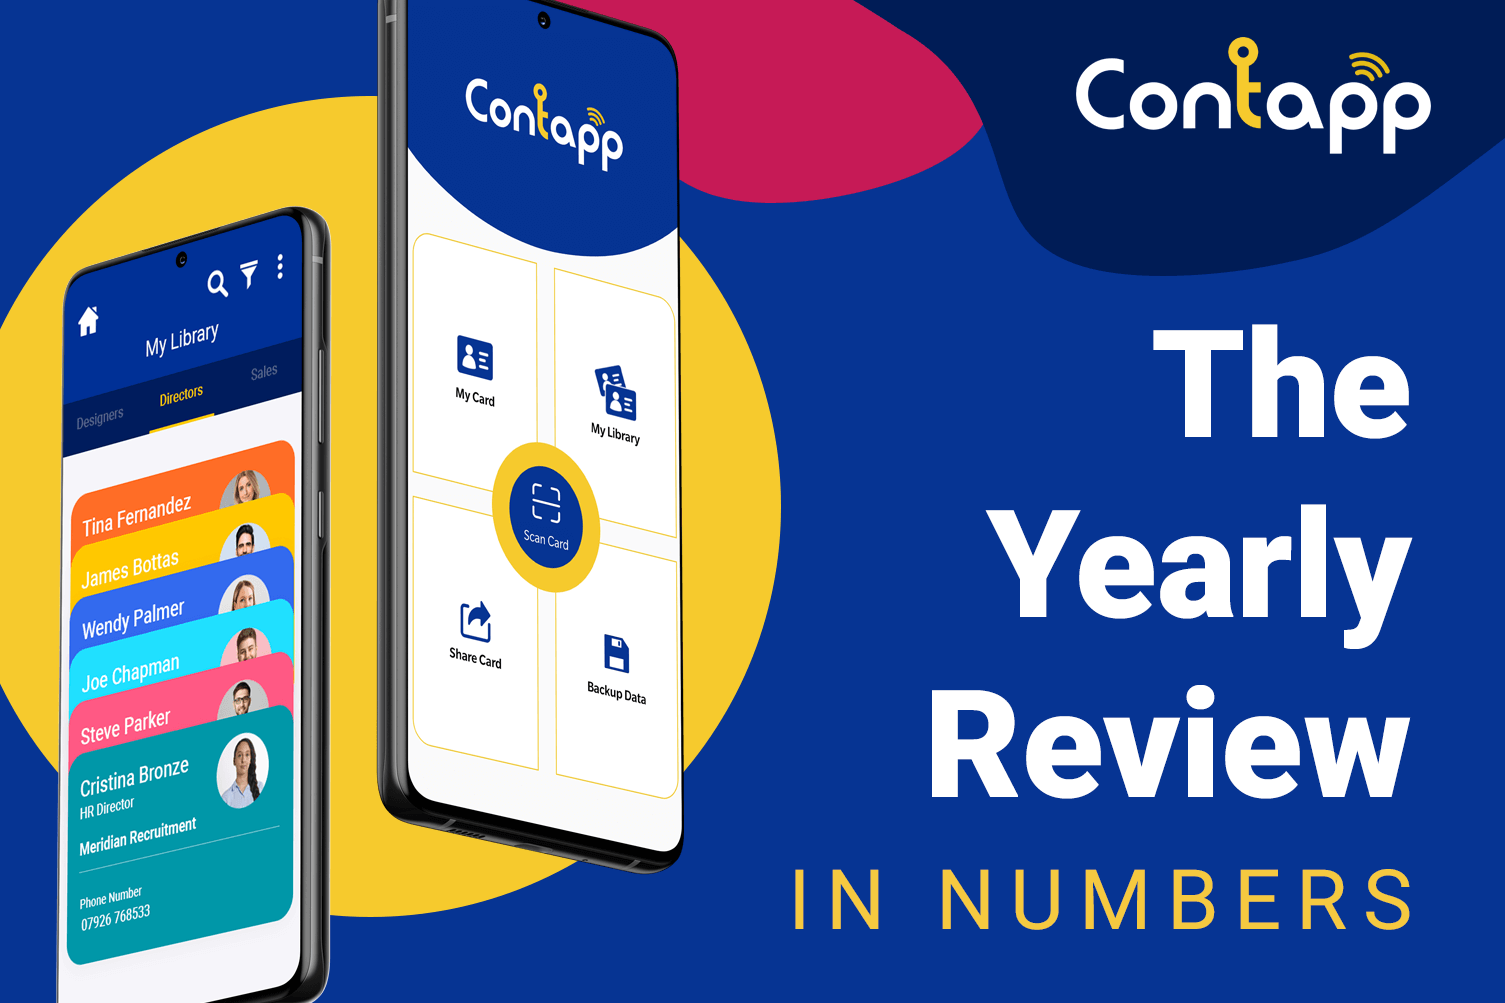 Contapp 2020 Review